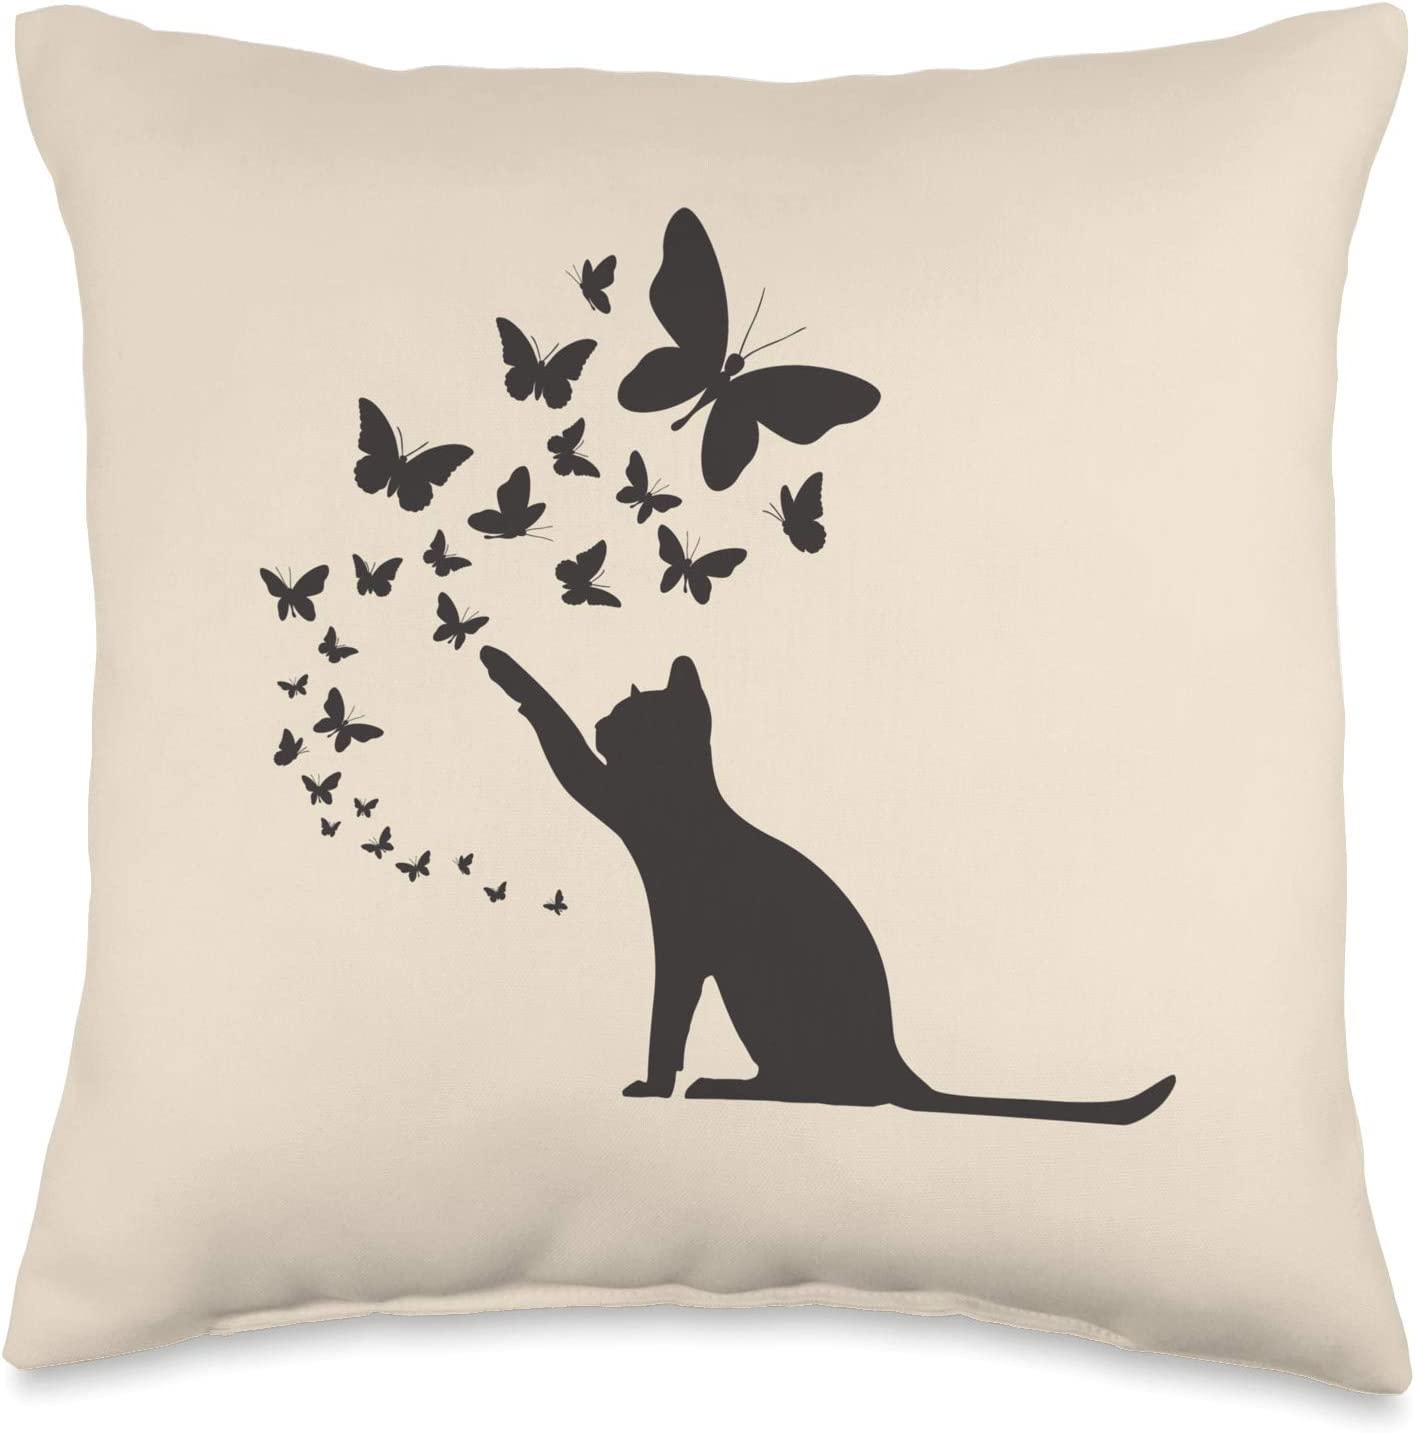 Bold Earth Home Decor by KAEDAM Cute Cat and Butterflies Trendy Coordinating Home Decor Throw Pillow, 16x16, Multicolor